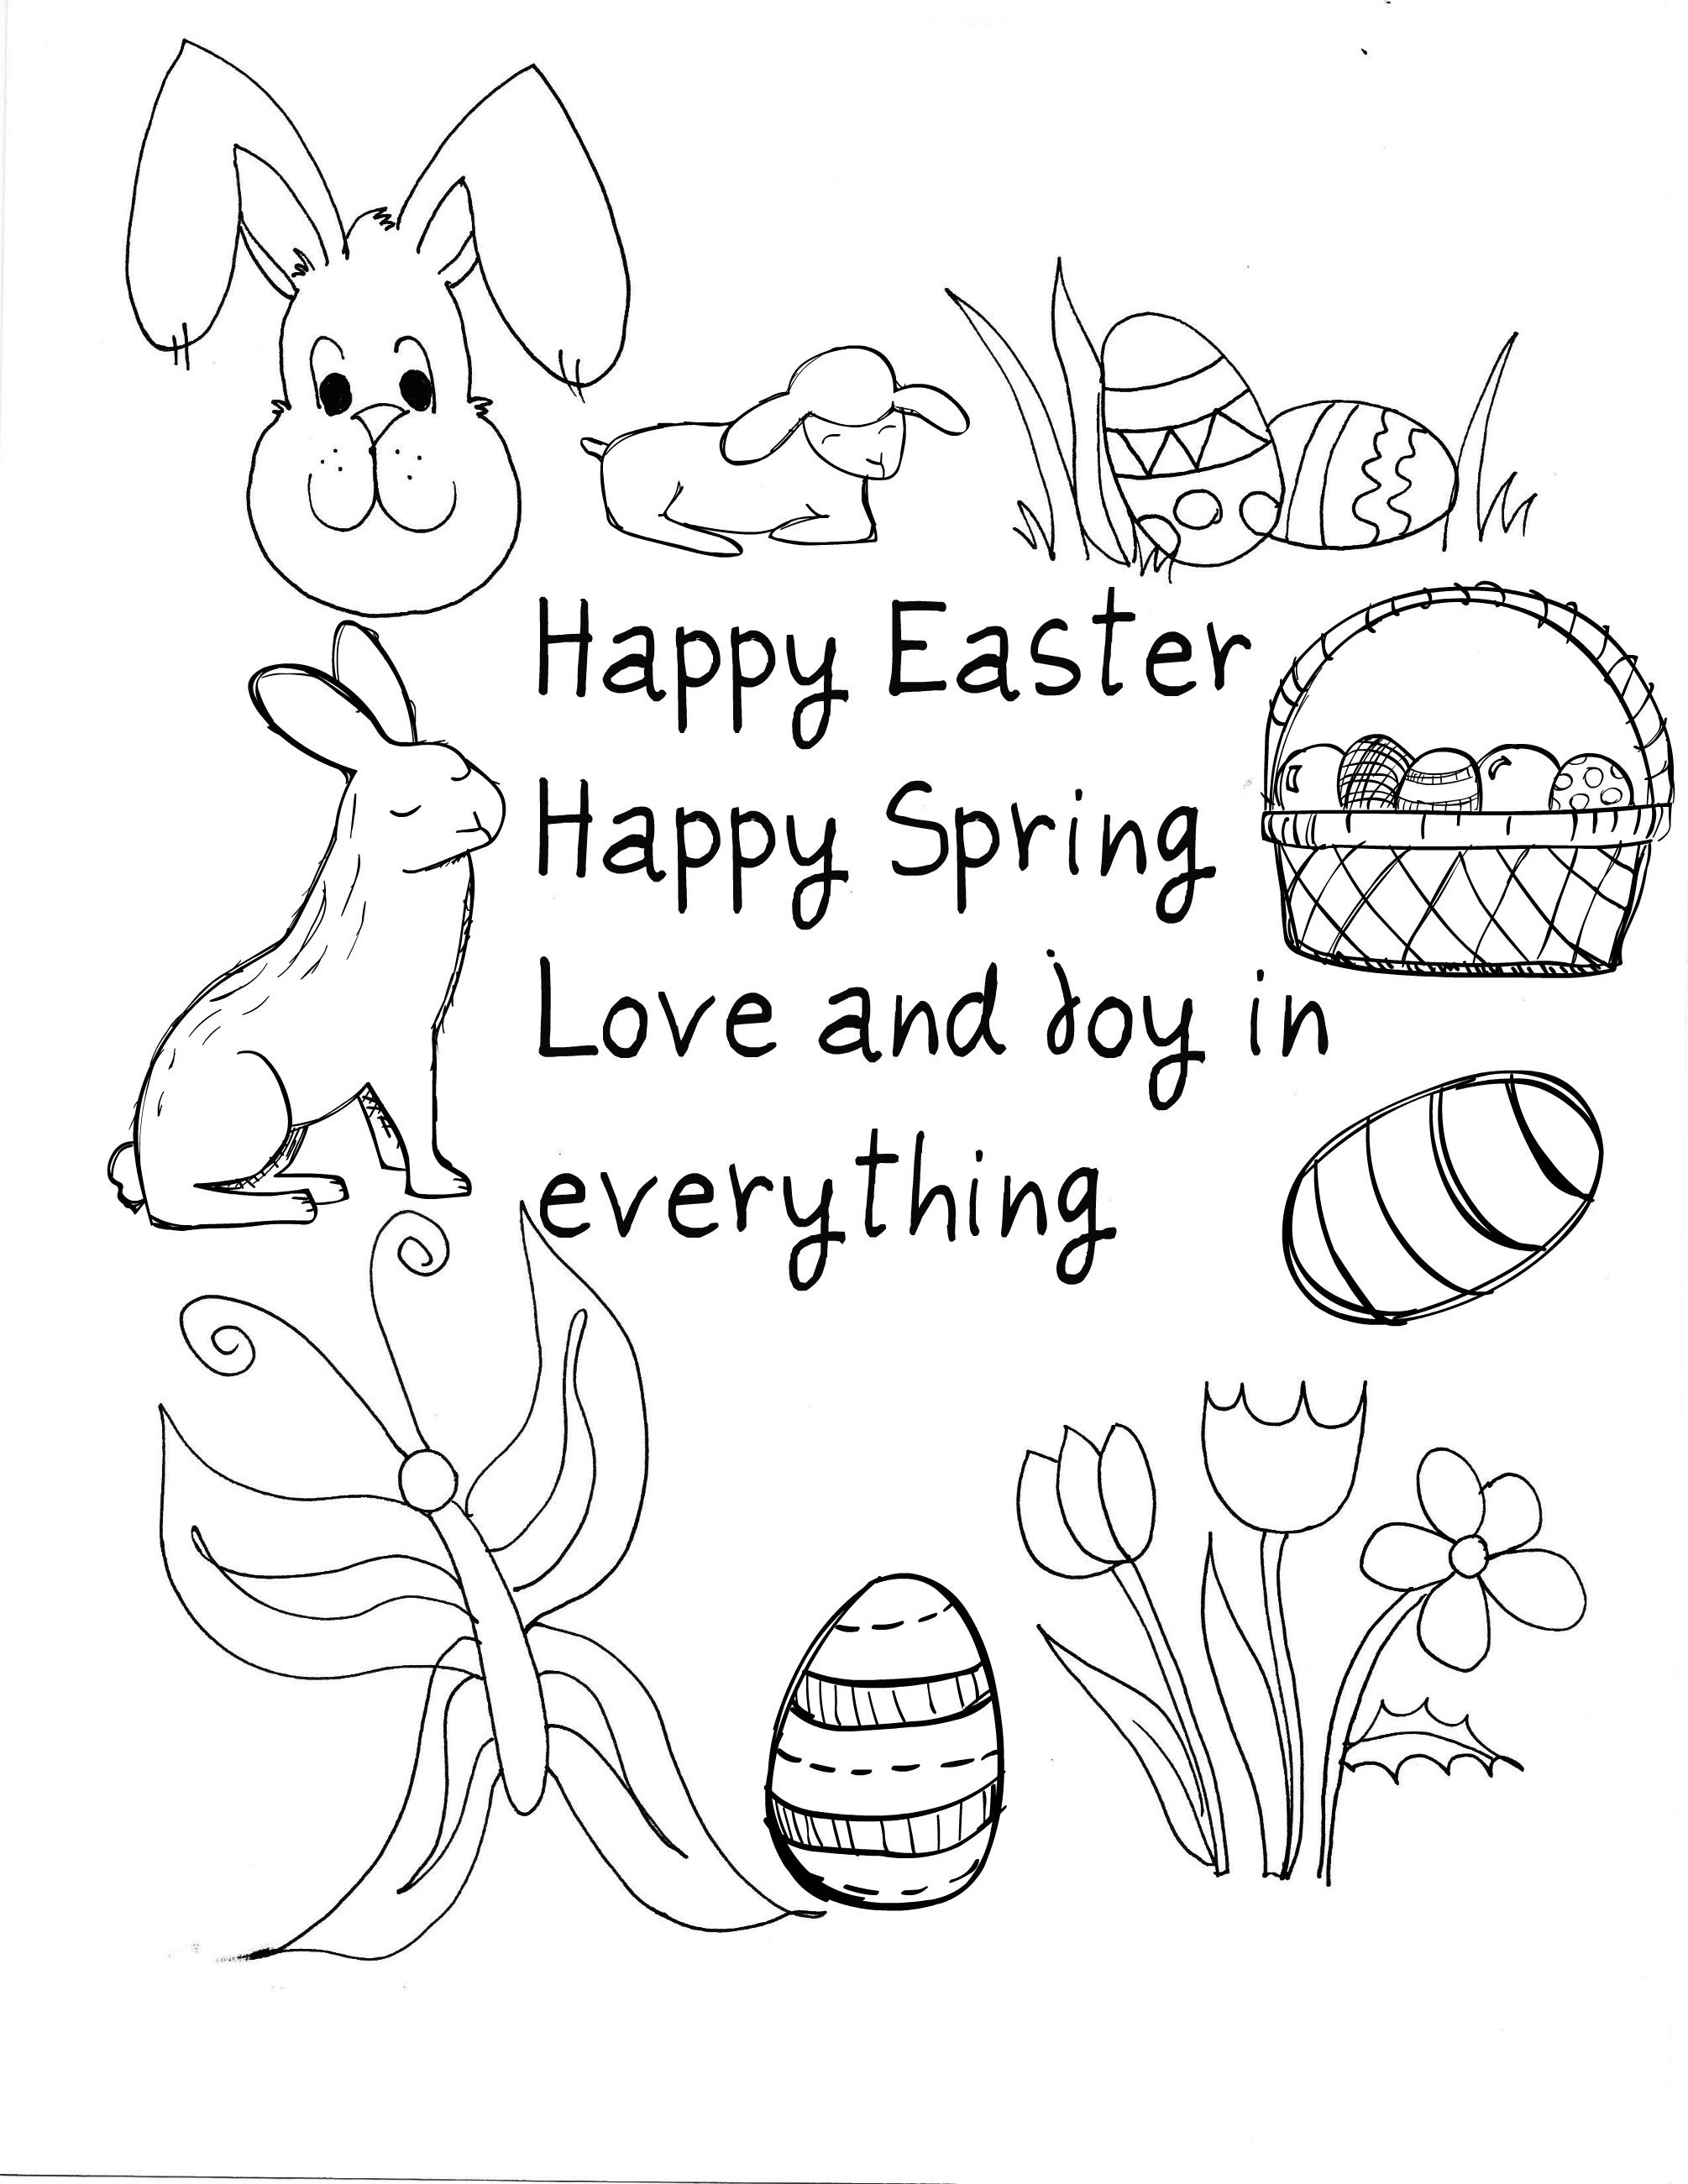 38 Happy Easter Coloring Page Happy Easter Wishes Free Coloring Download Of Bunny Egg by Rustchic Bucket Printable